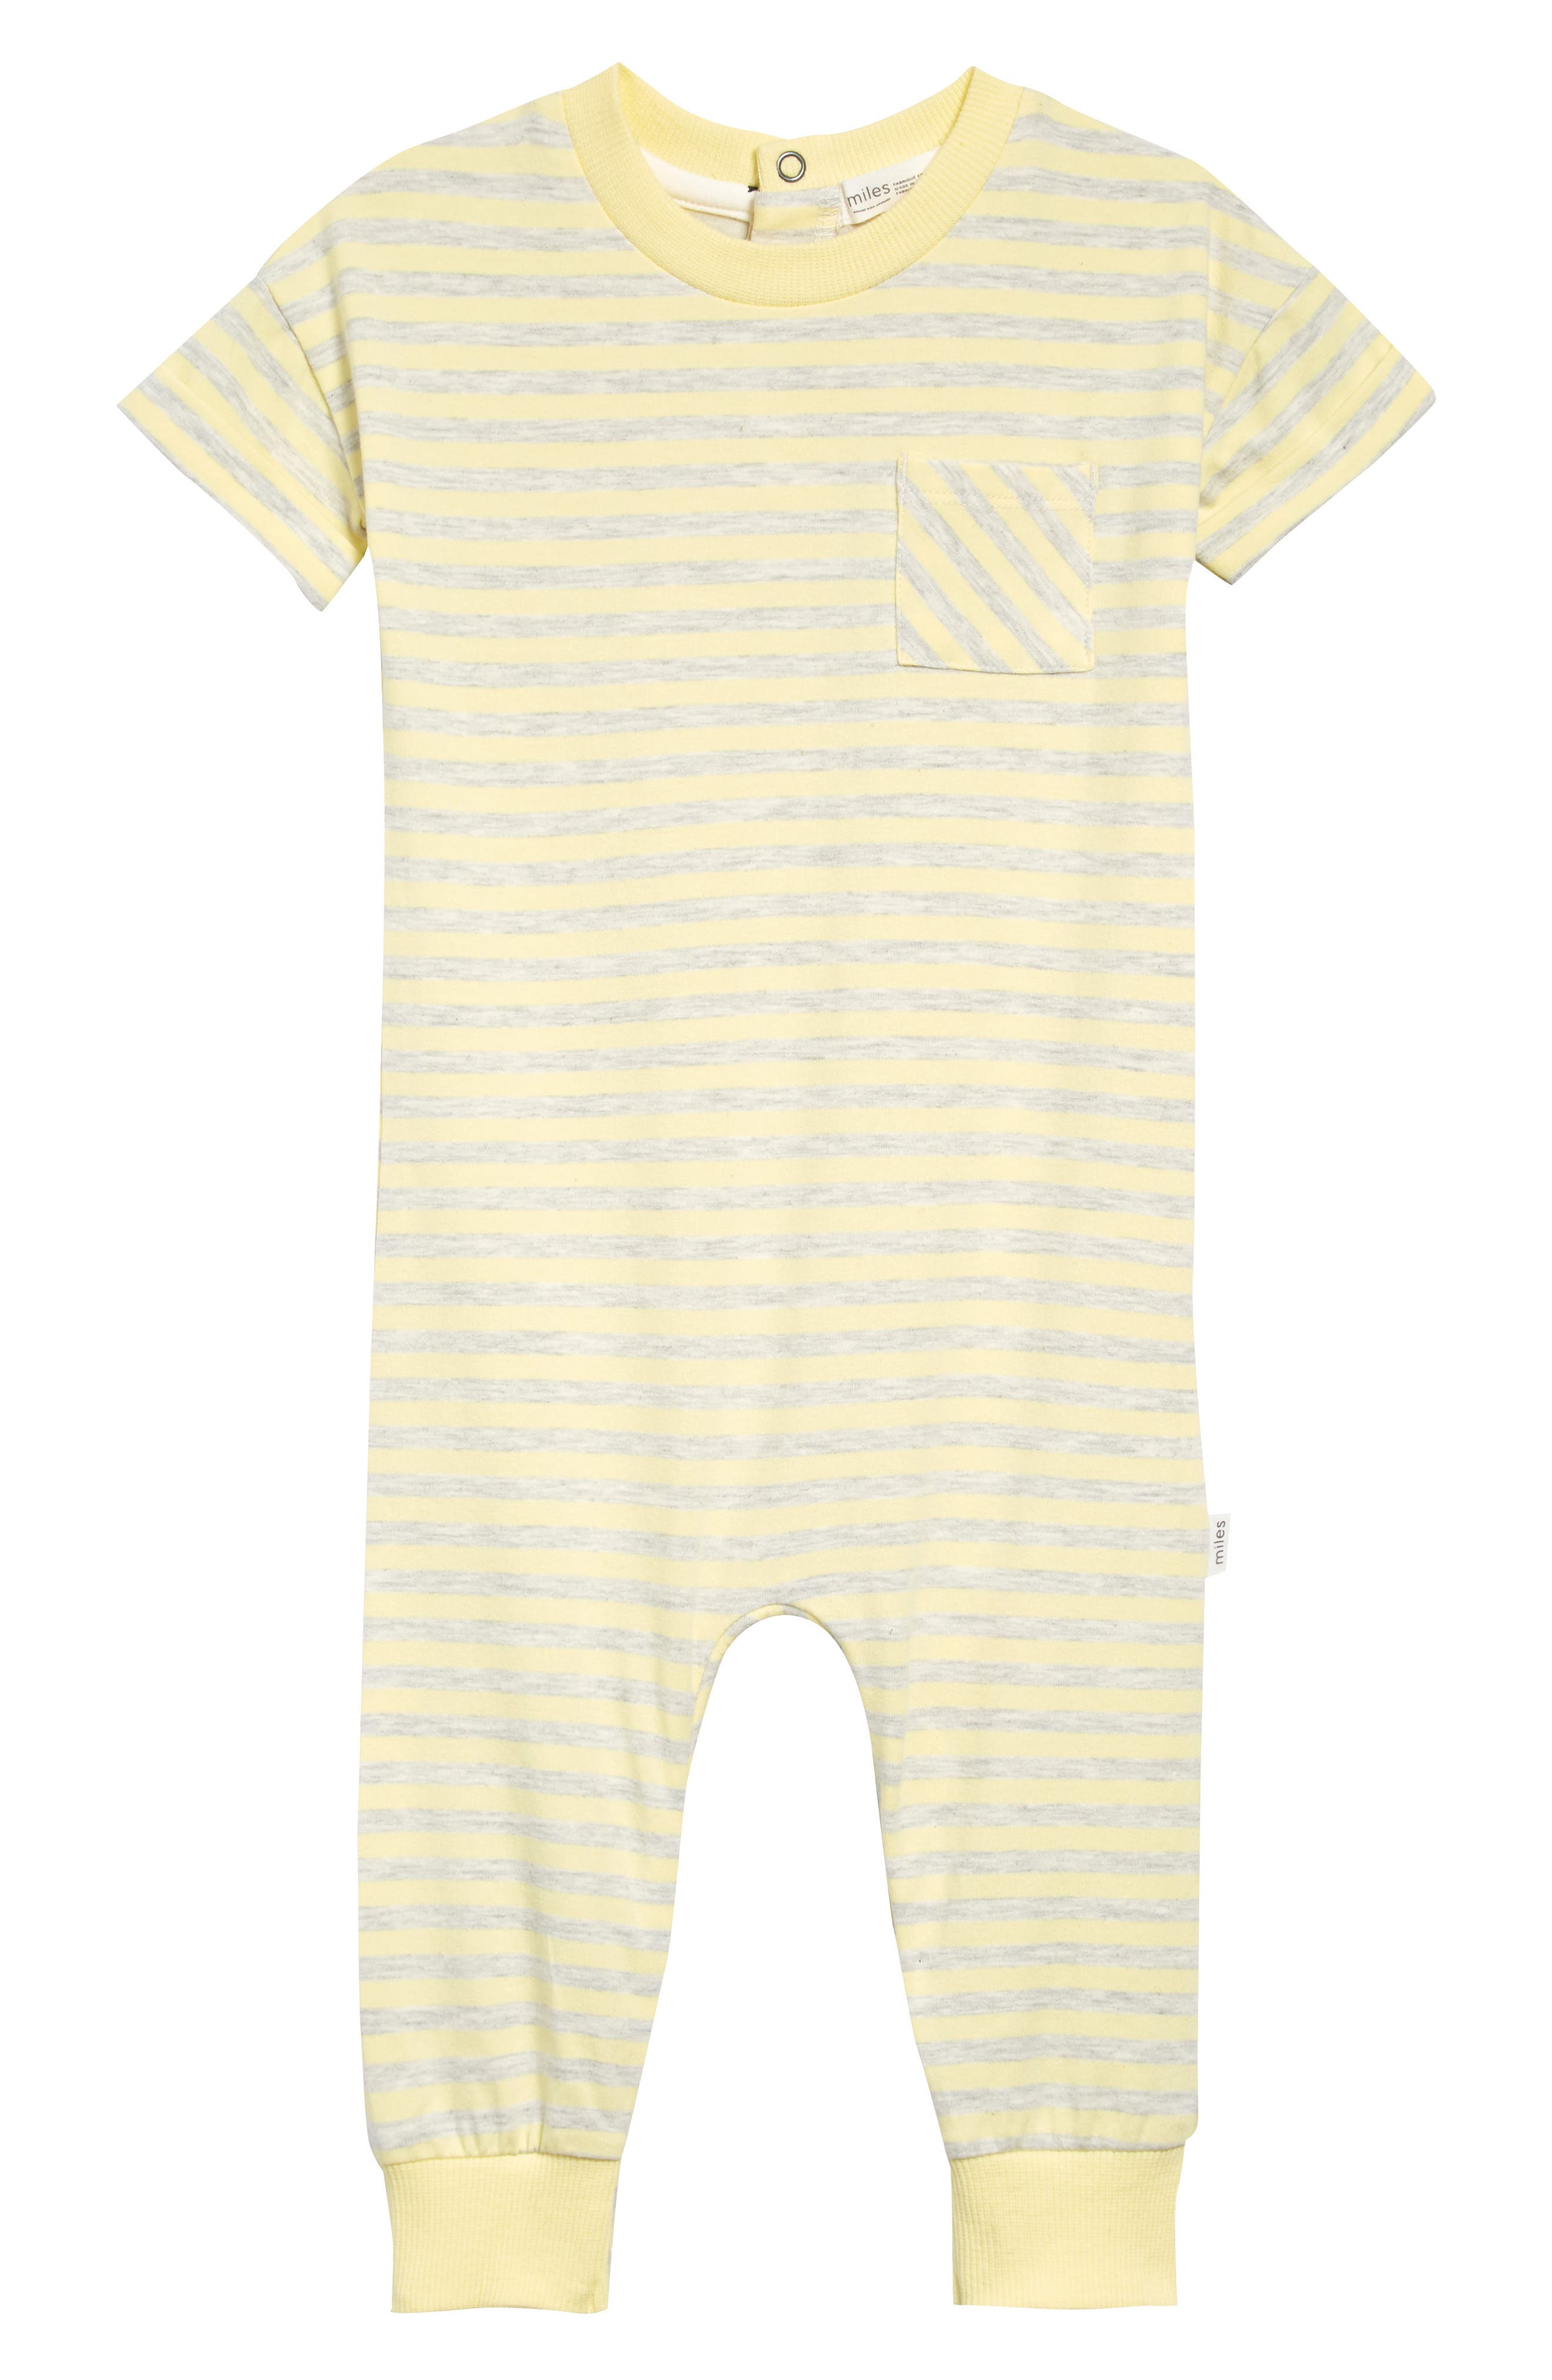 Made from soft stretch cotton, this short-sleeve romper patterned in heathered stripes is ready for playtime. Style Name: Miles Baby Stripe Romper (Baby). Style Number: 6082280. Available in stores.